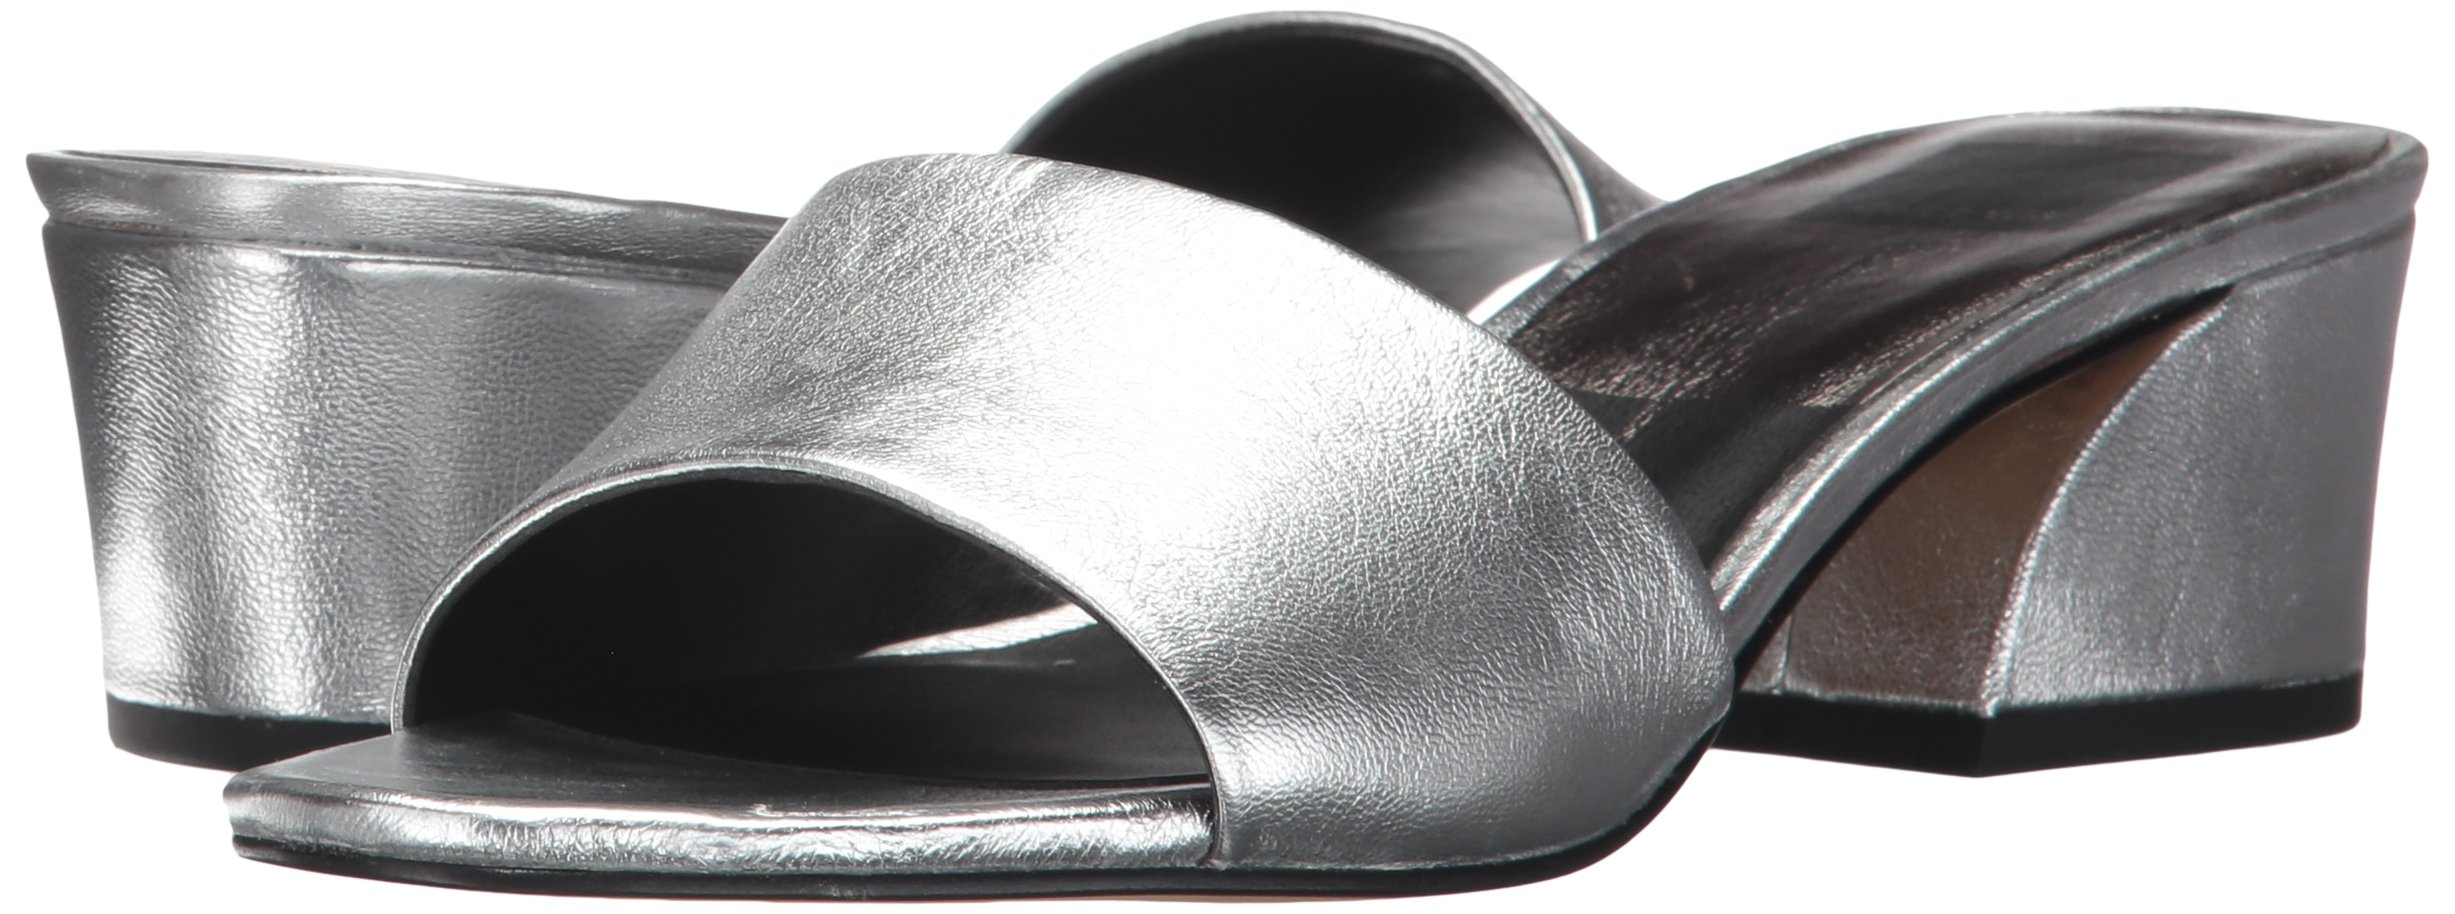 Dolce Vita Women's Rilee Slide Sandal, Silver Leather, 7 Medium US by Dolce Vita (Image #6)